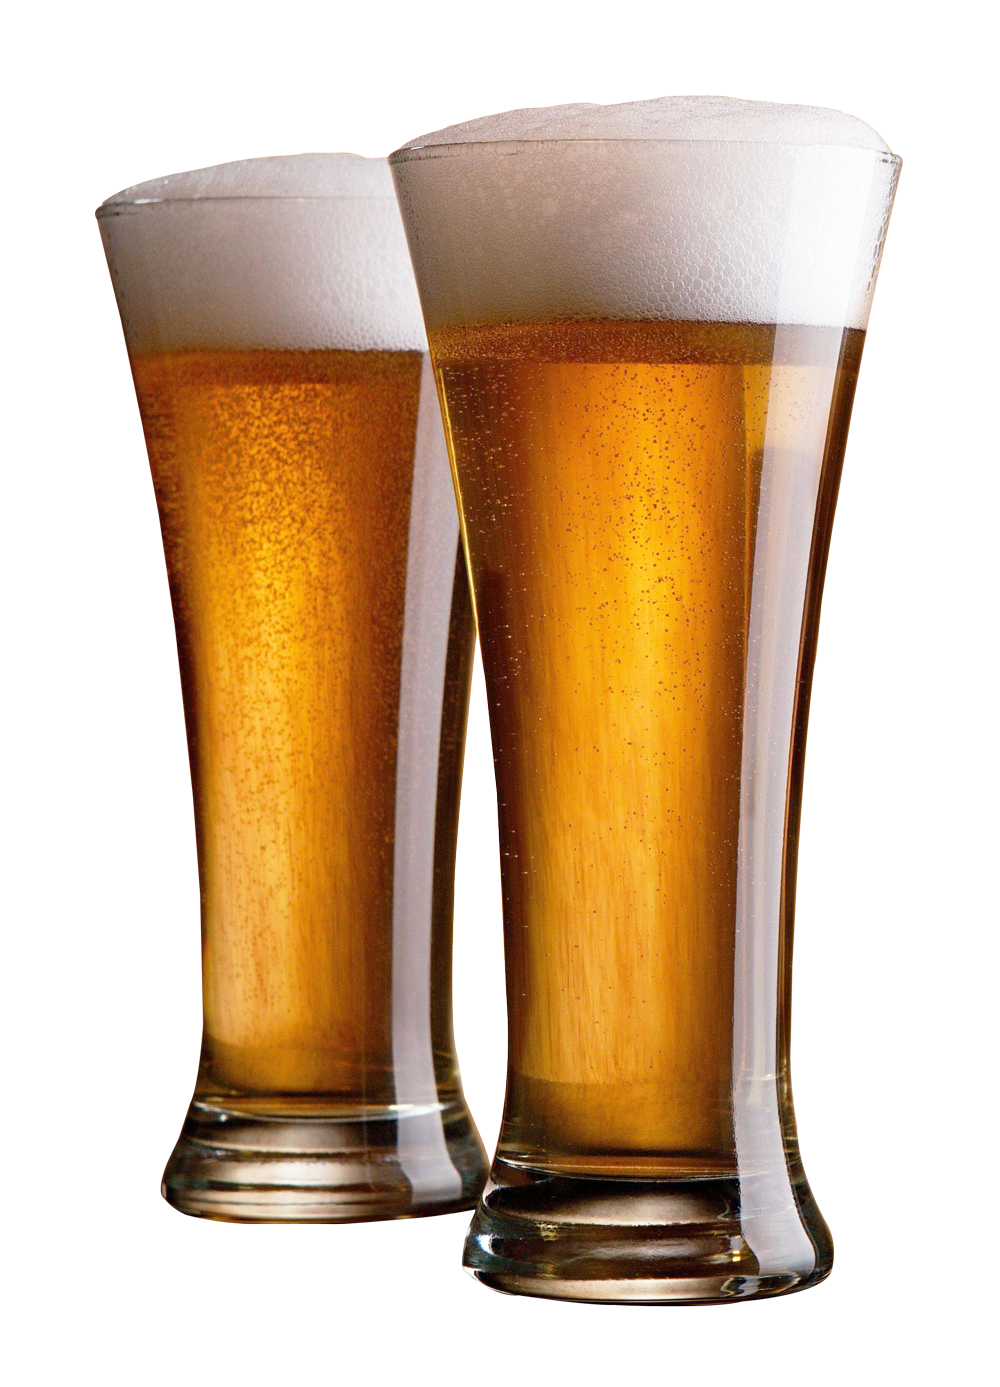 Download Beer Glasses PNG Image for Free.